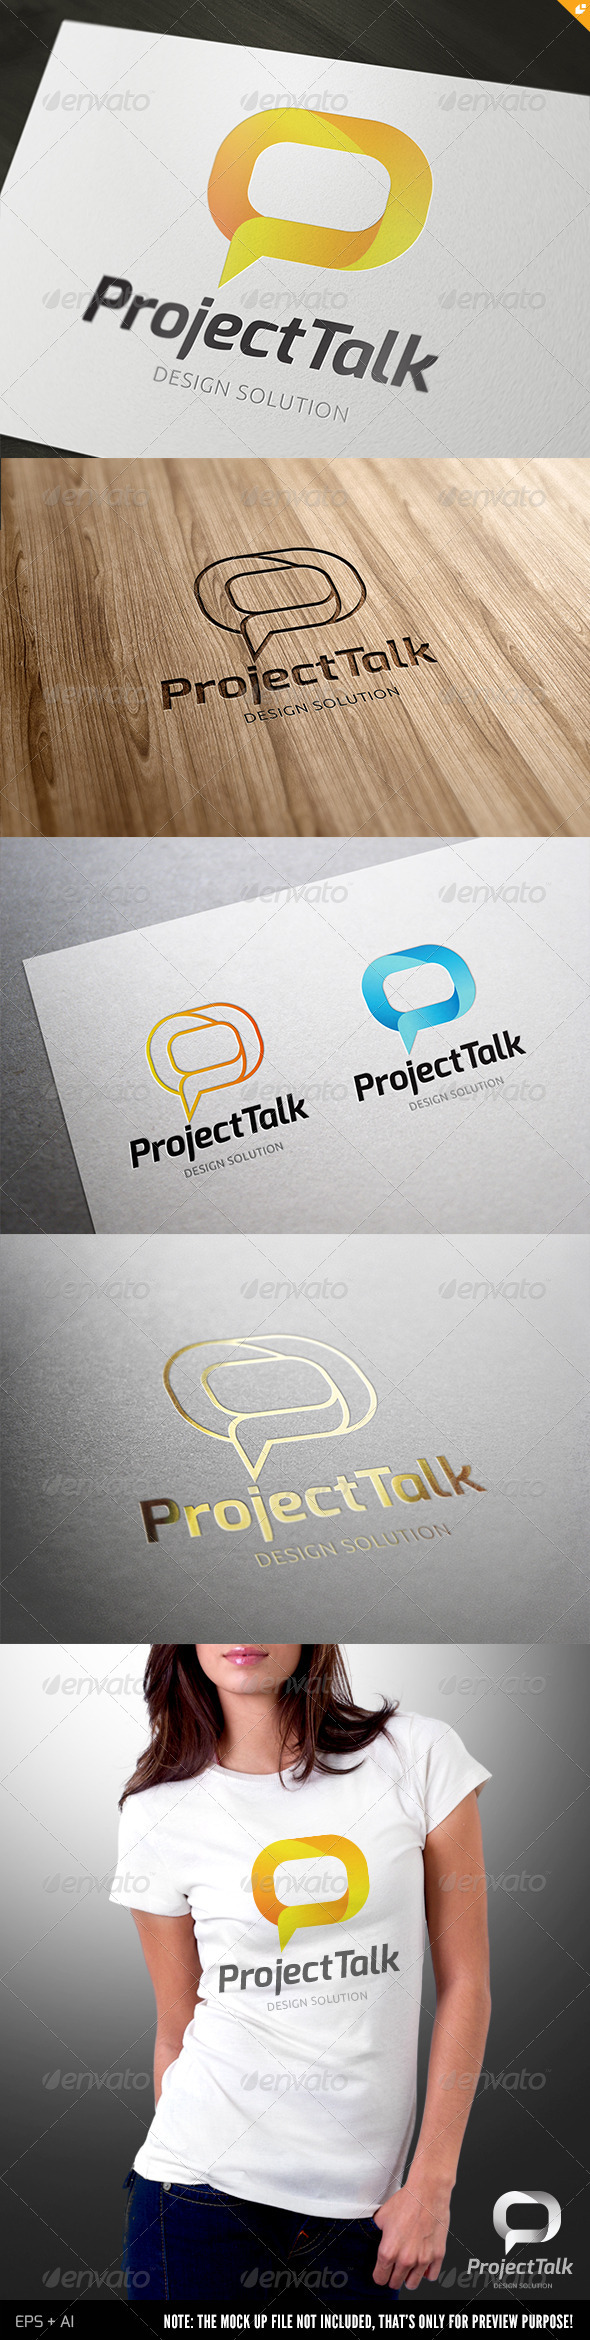 Project Talk Logo - Vector Abstract